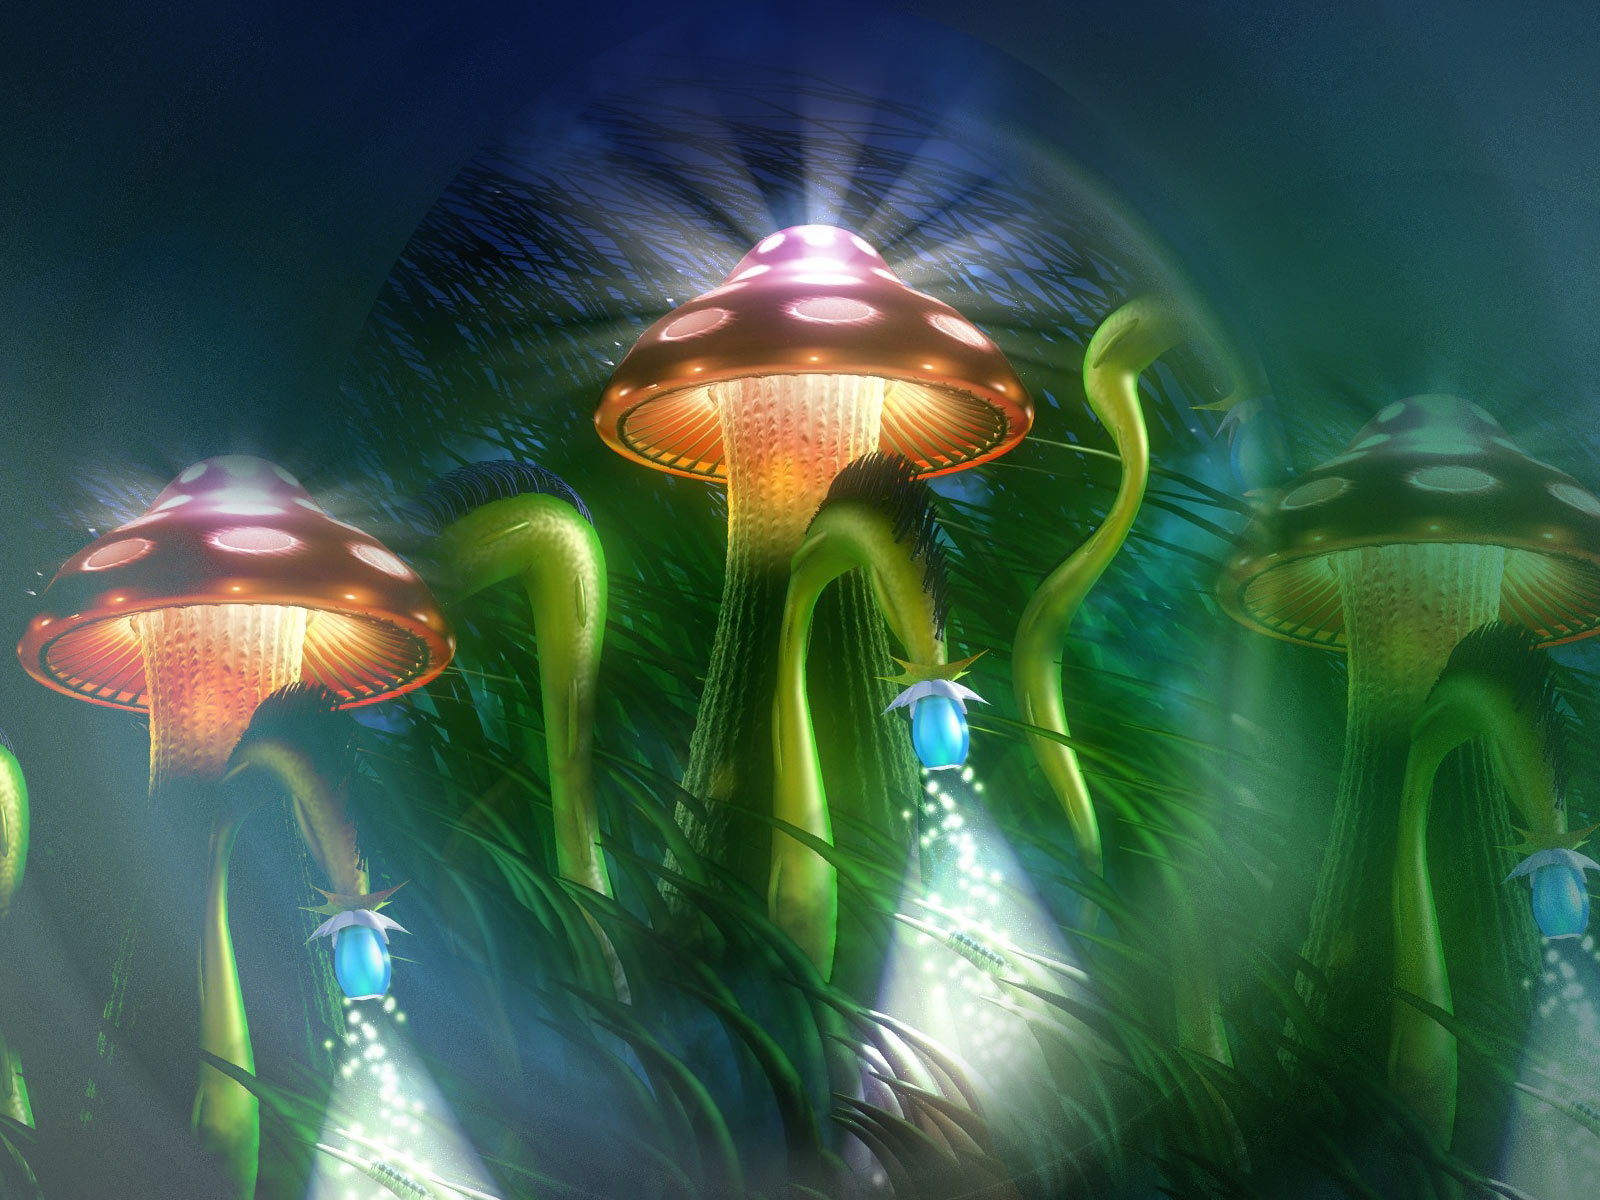 Mushroom computer wallpapers desktop backgrounds - Desktop wallpaper 1600x1200 ...